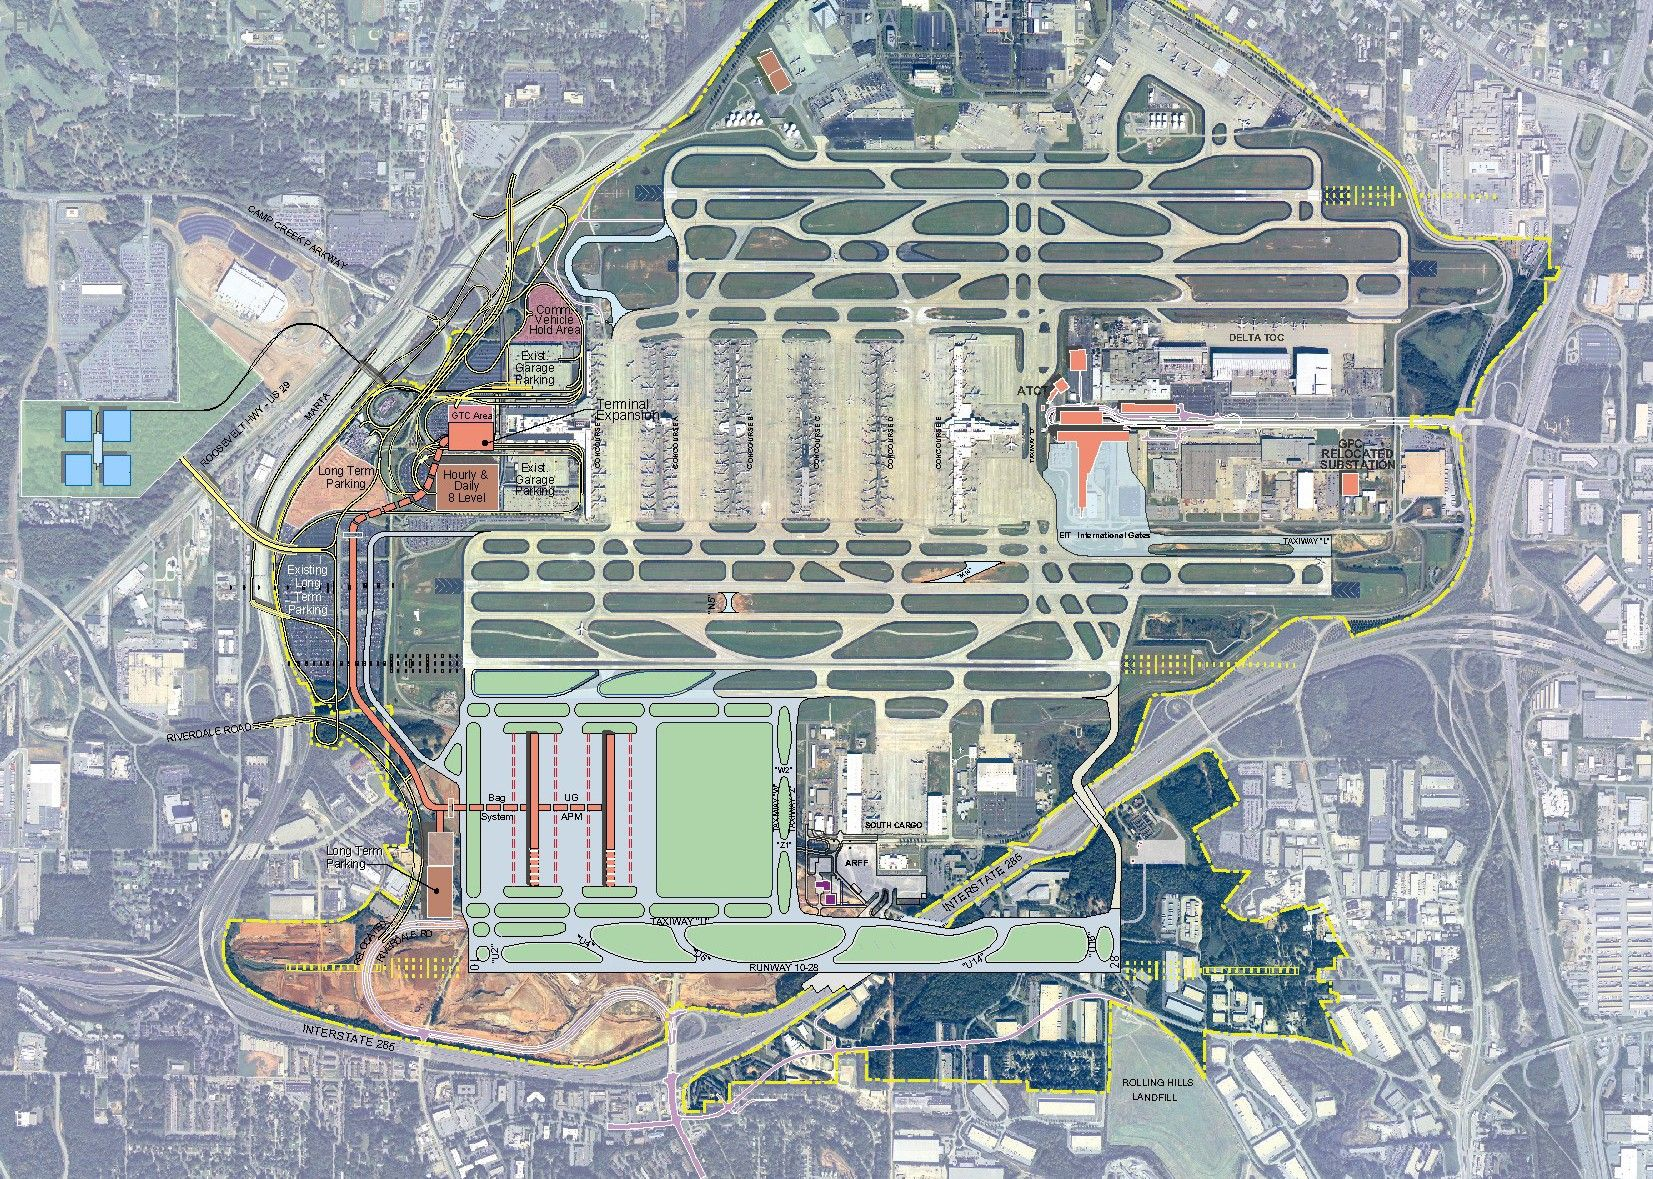 Atlanta Hartsfield Jackson Proposed South Terminal (vs